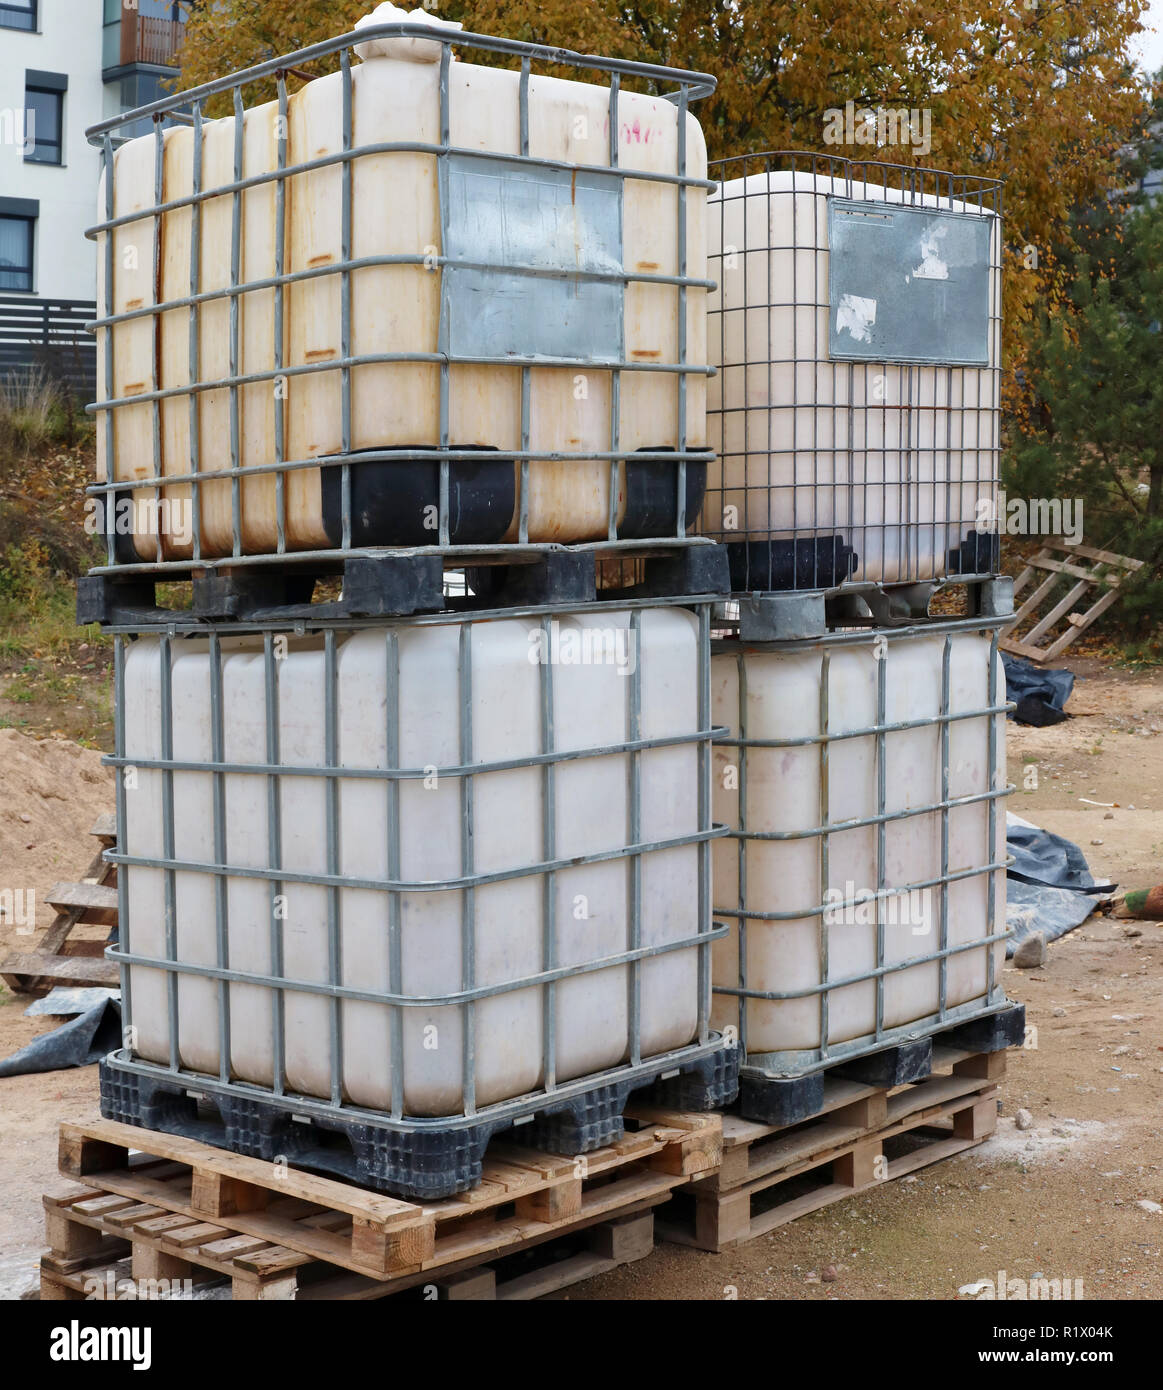 Large plastic steel reinforced containers used for storing